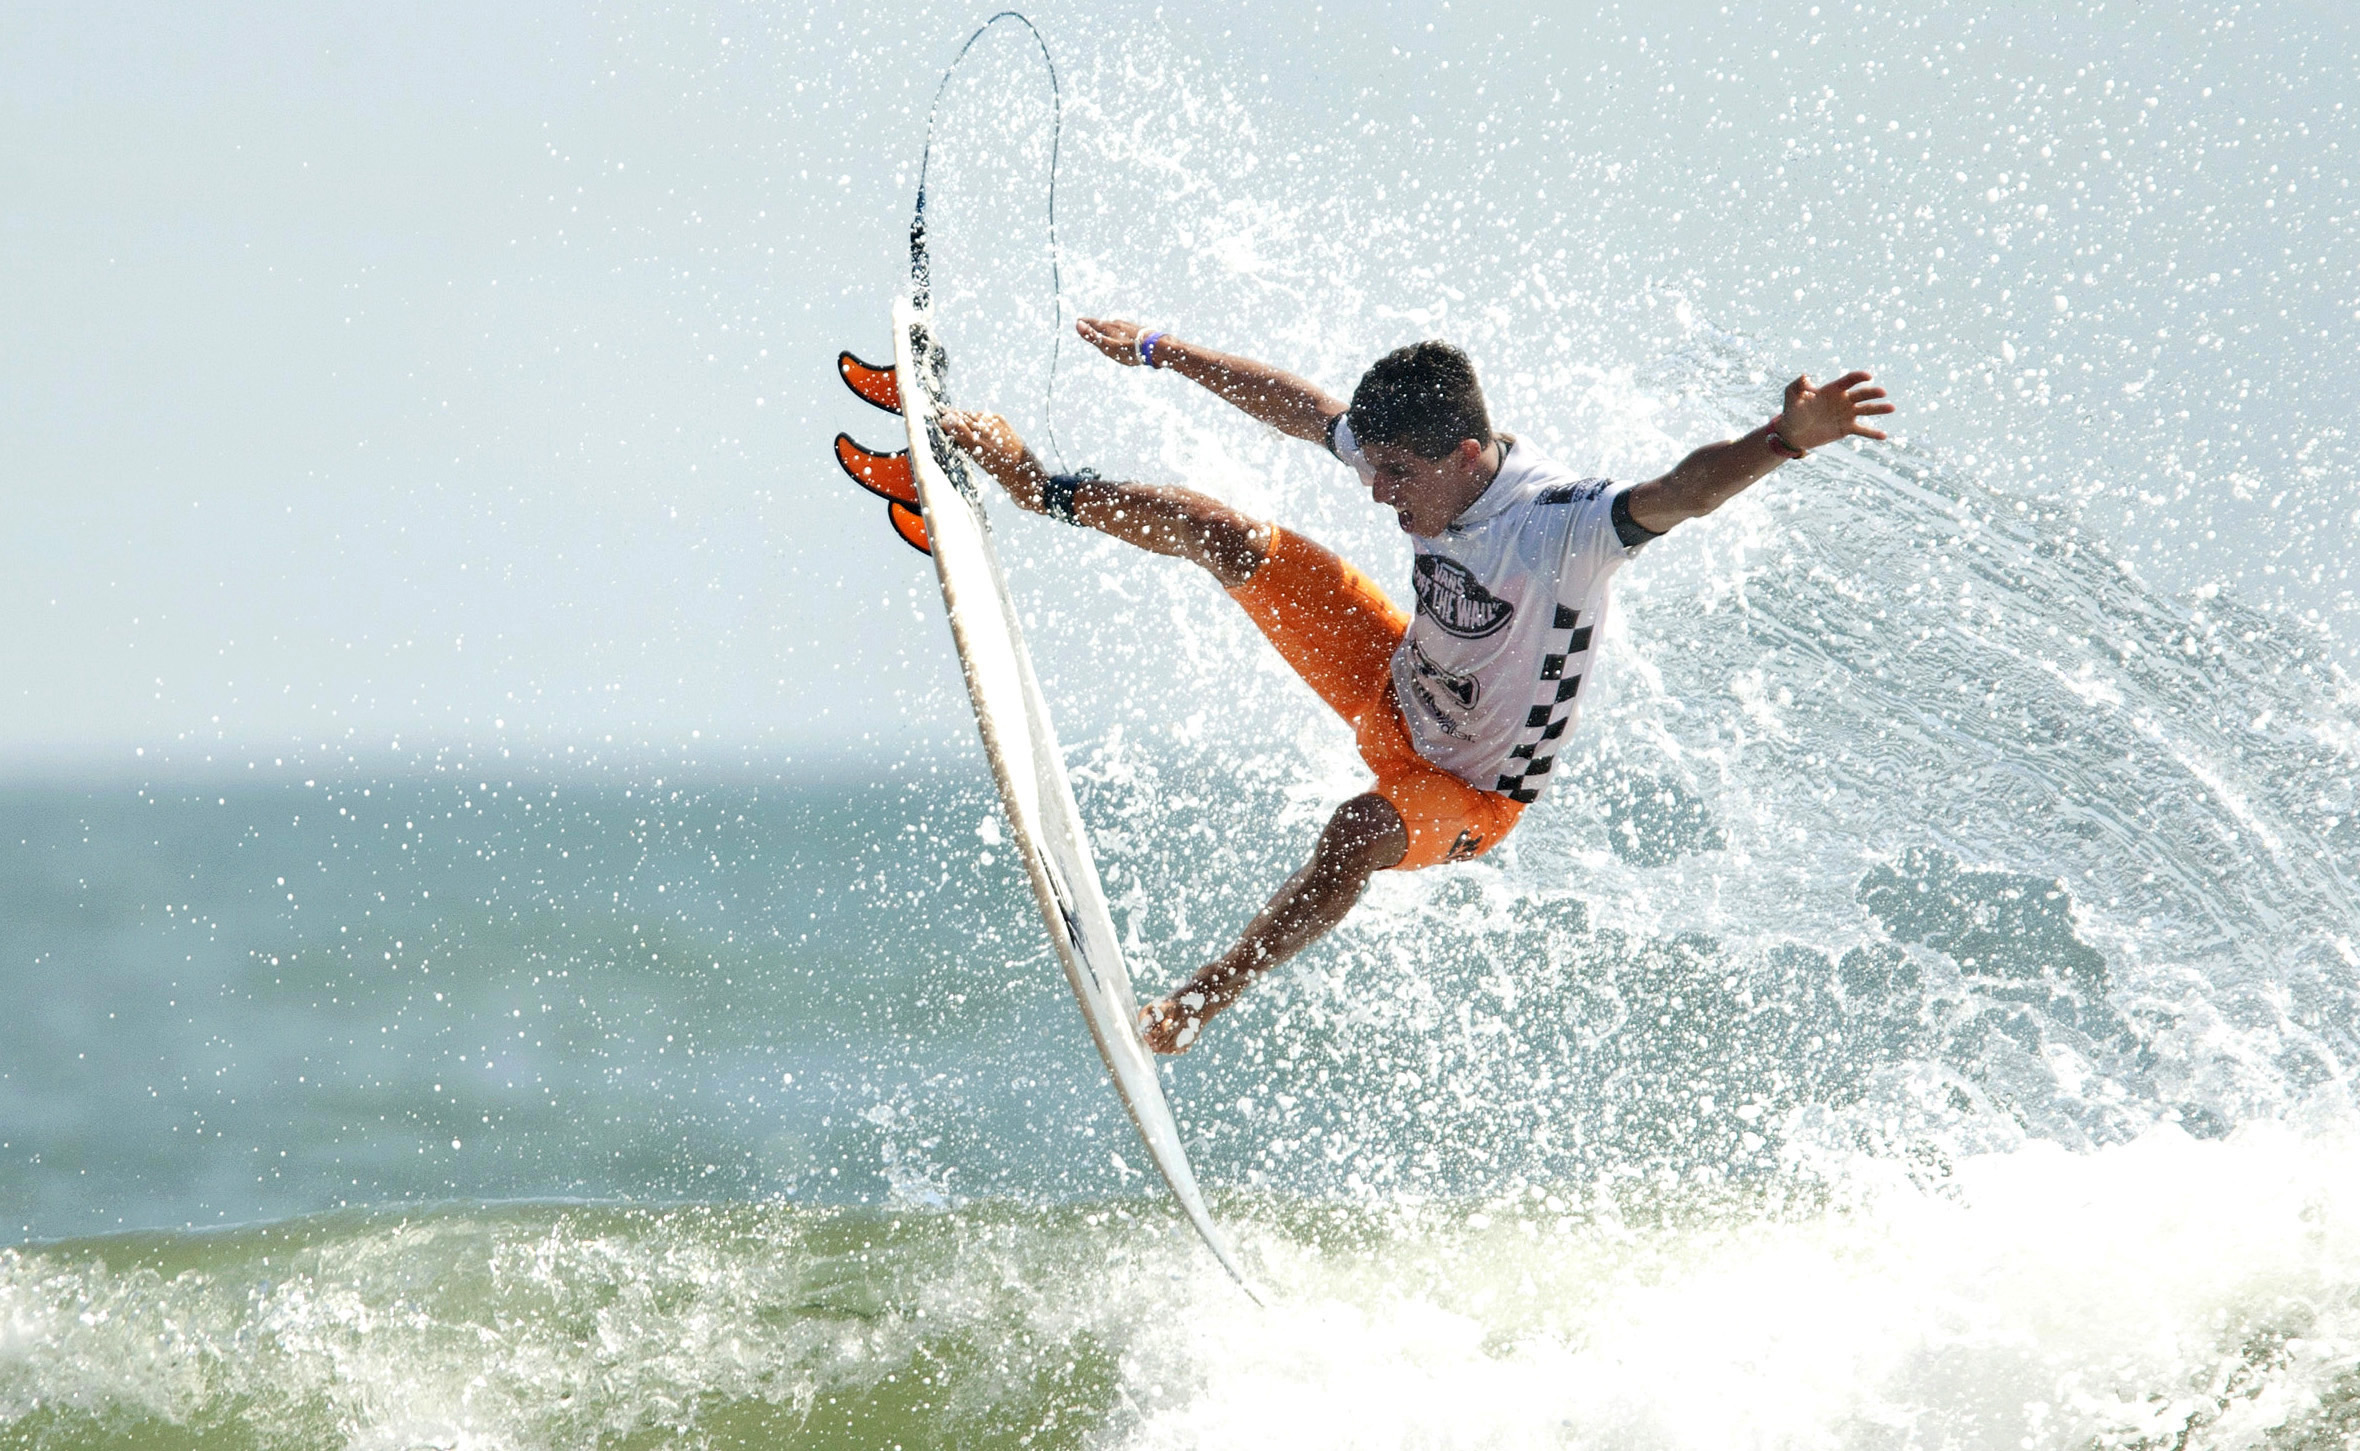 2012, Filipe Toledo of Brazil, pulls off a 360 air, during the Vans Pro Mens semi-finals at the Coastal Edge 50th East Coast Surfing Championships.